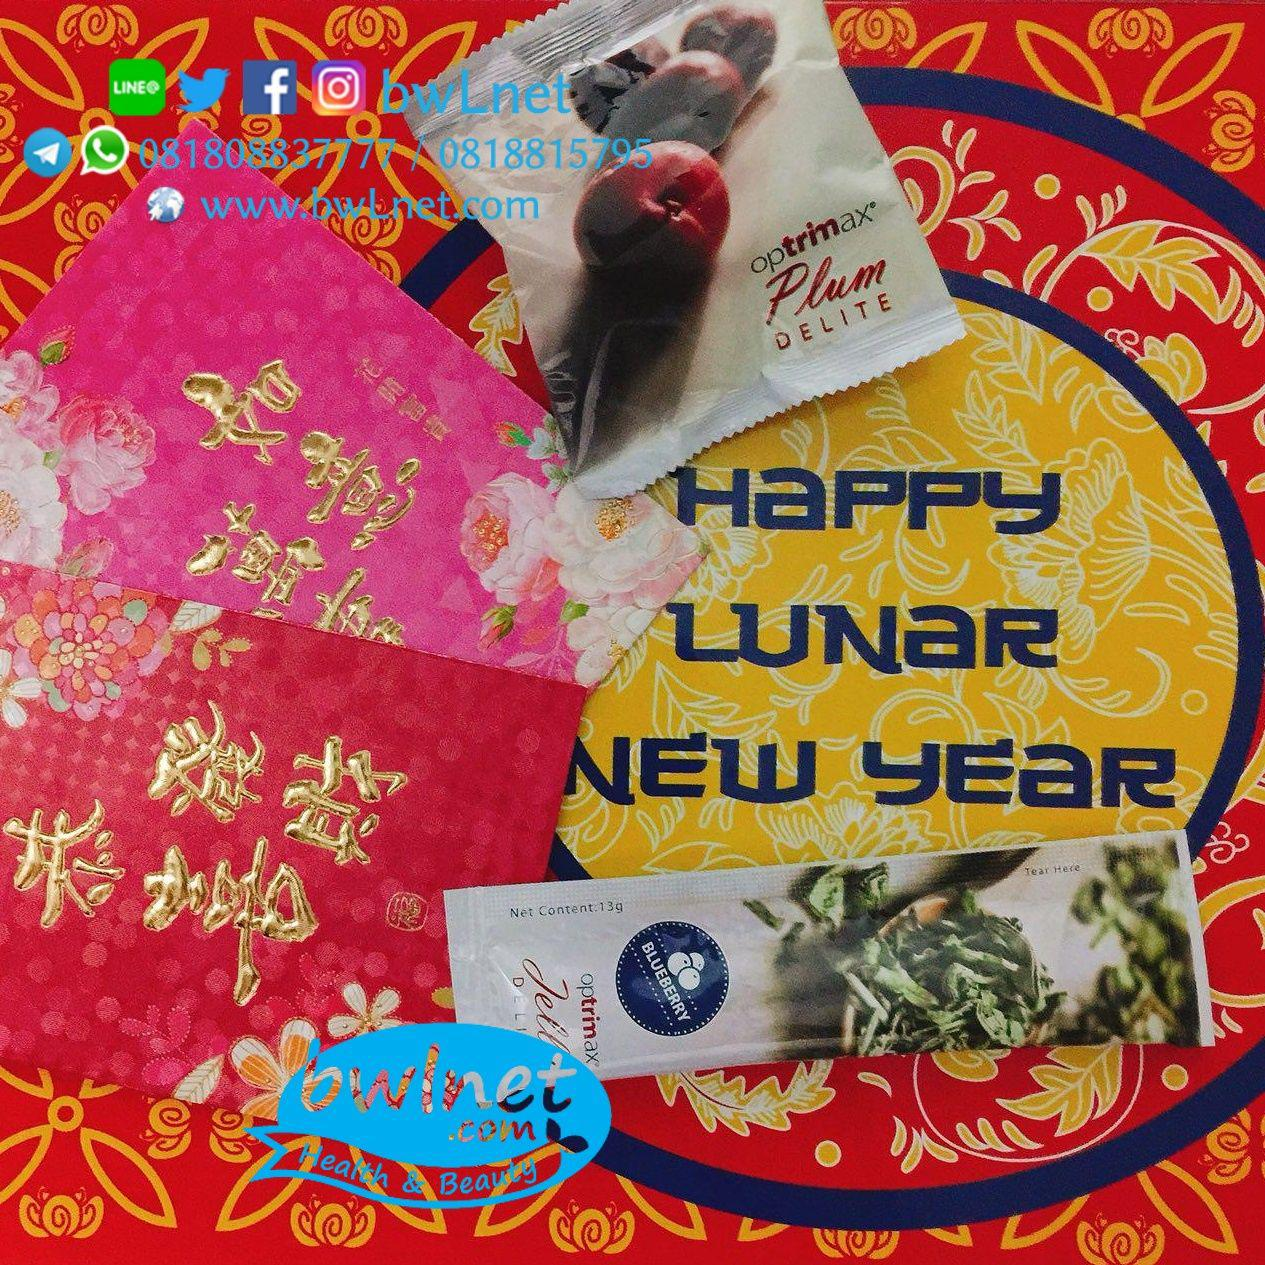 bwlnet-happy-lunar-new-year-2018